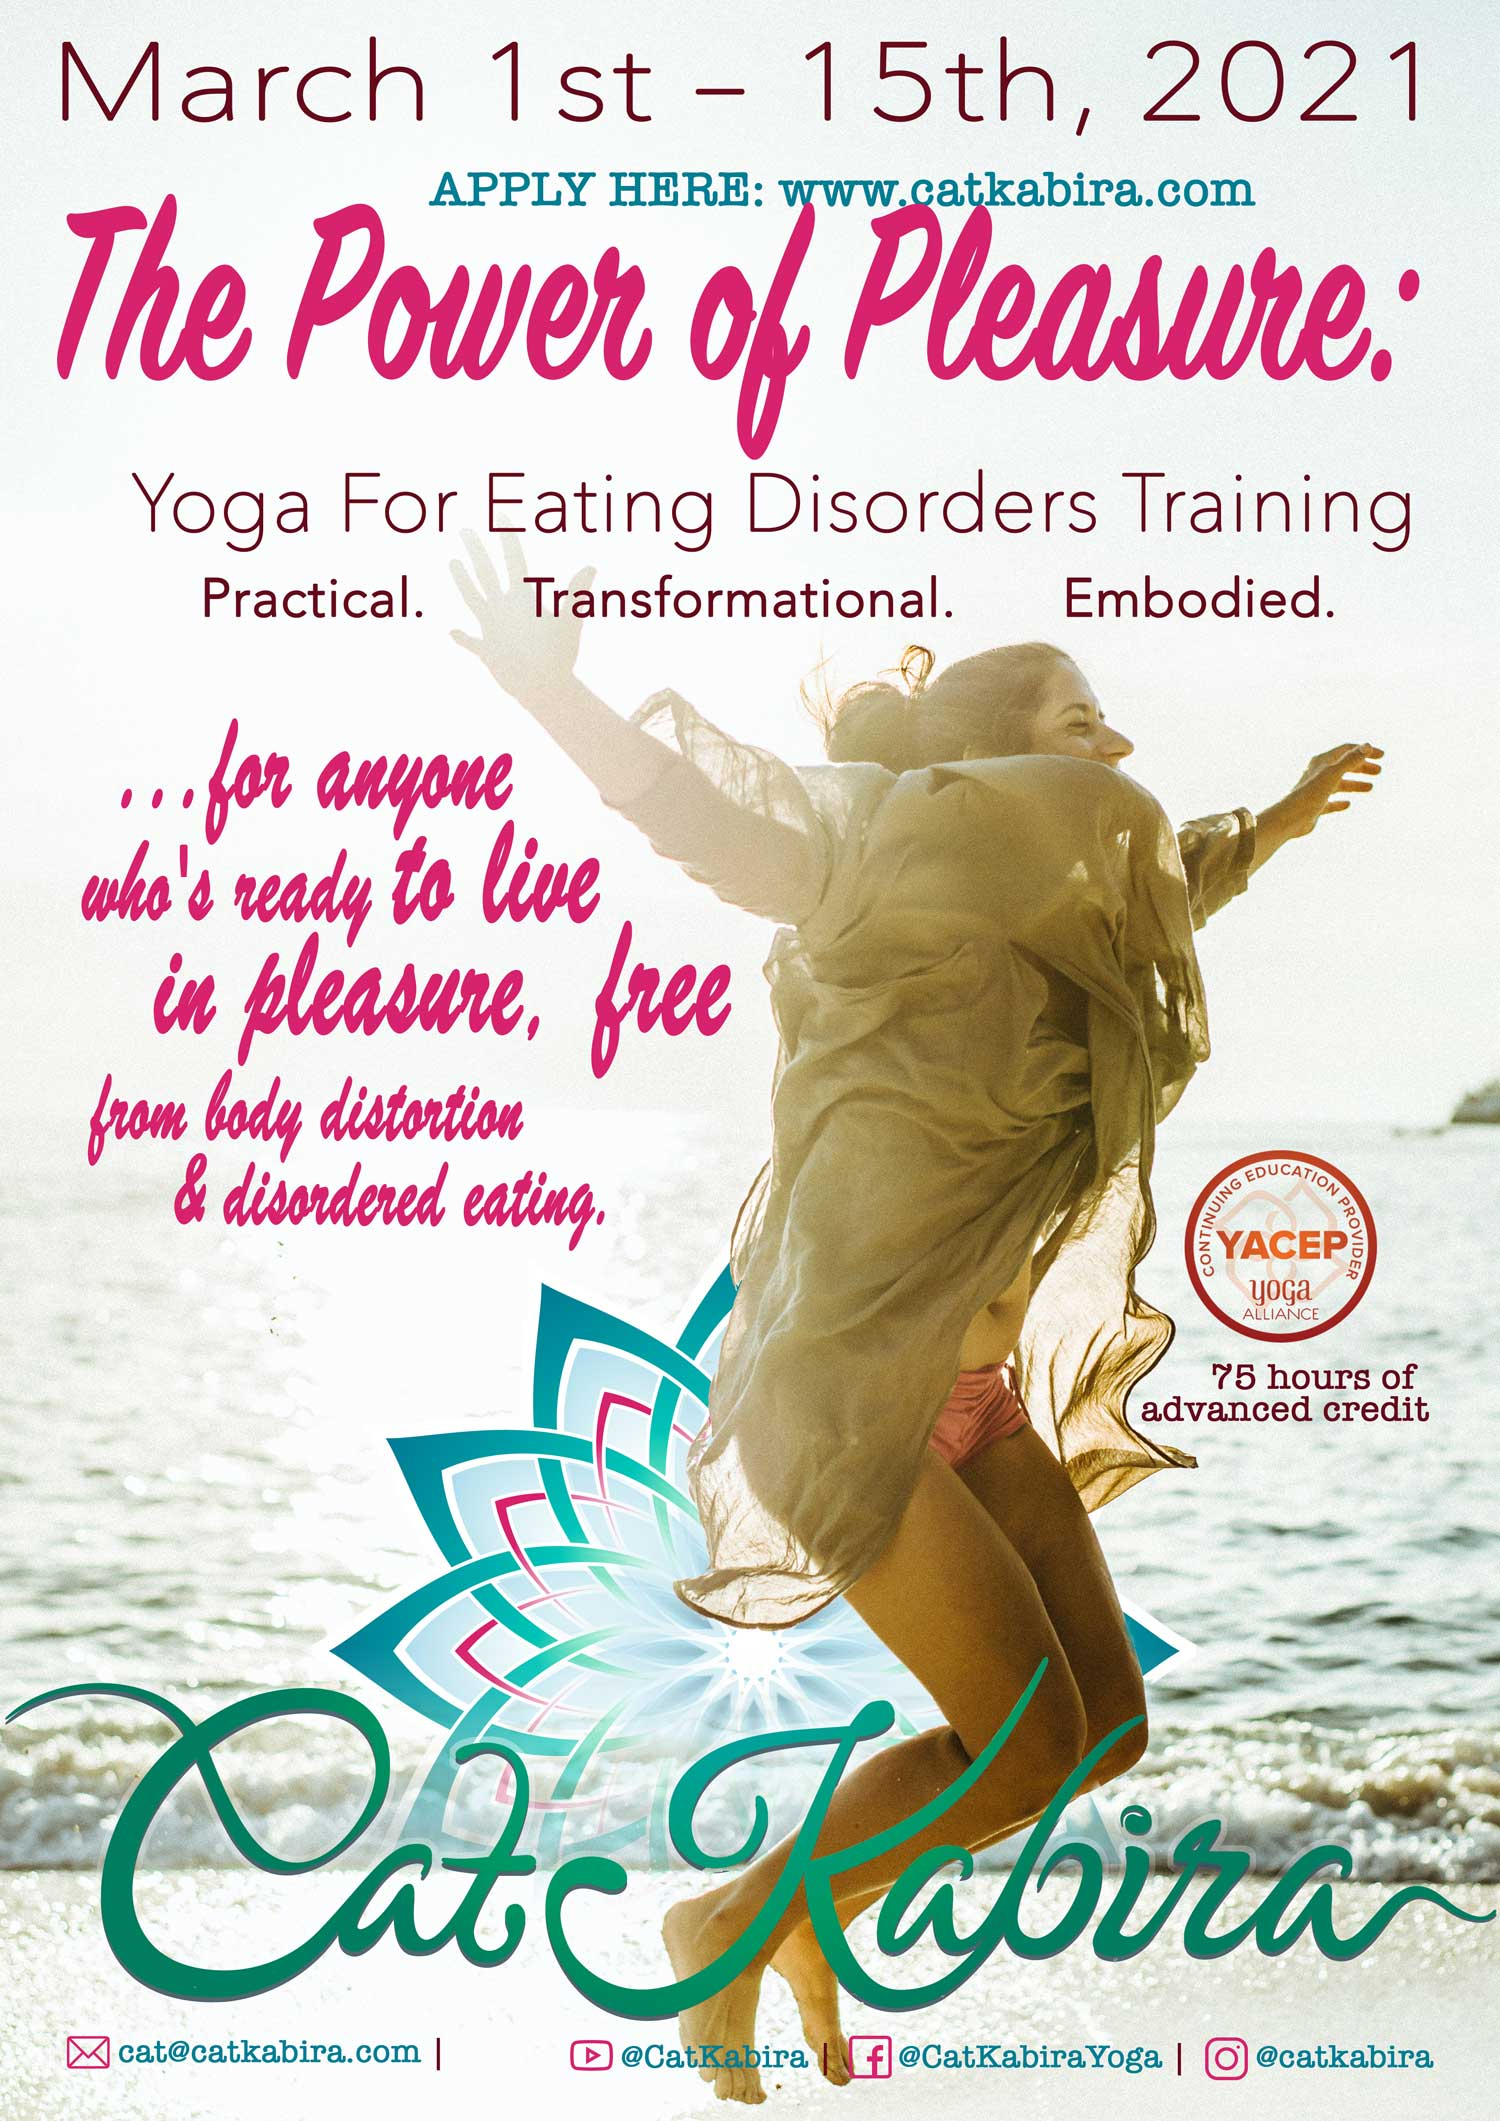 catkabira.com - The Power of Pleasure: Yoga for Eating Disorders In-Person Training, 2021